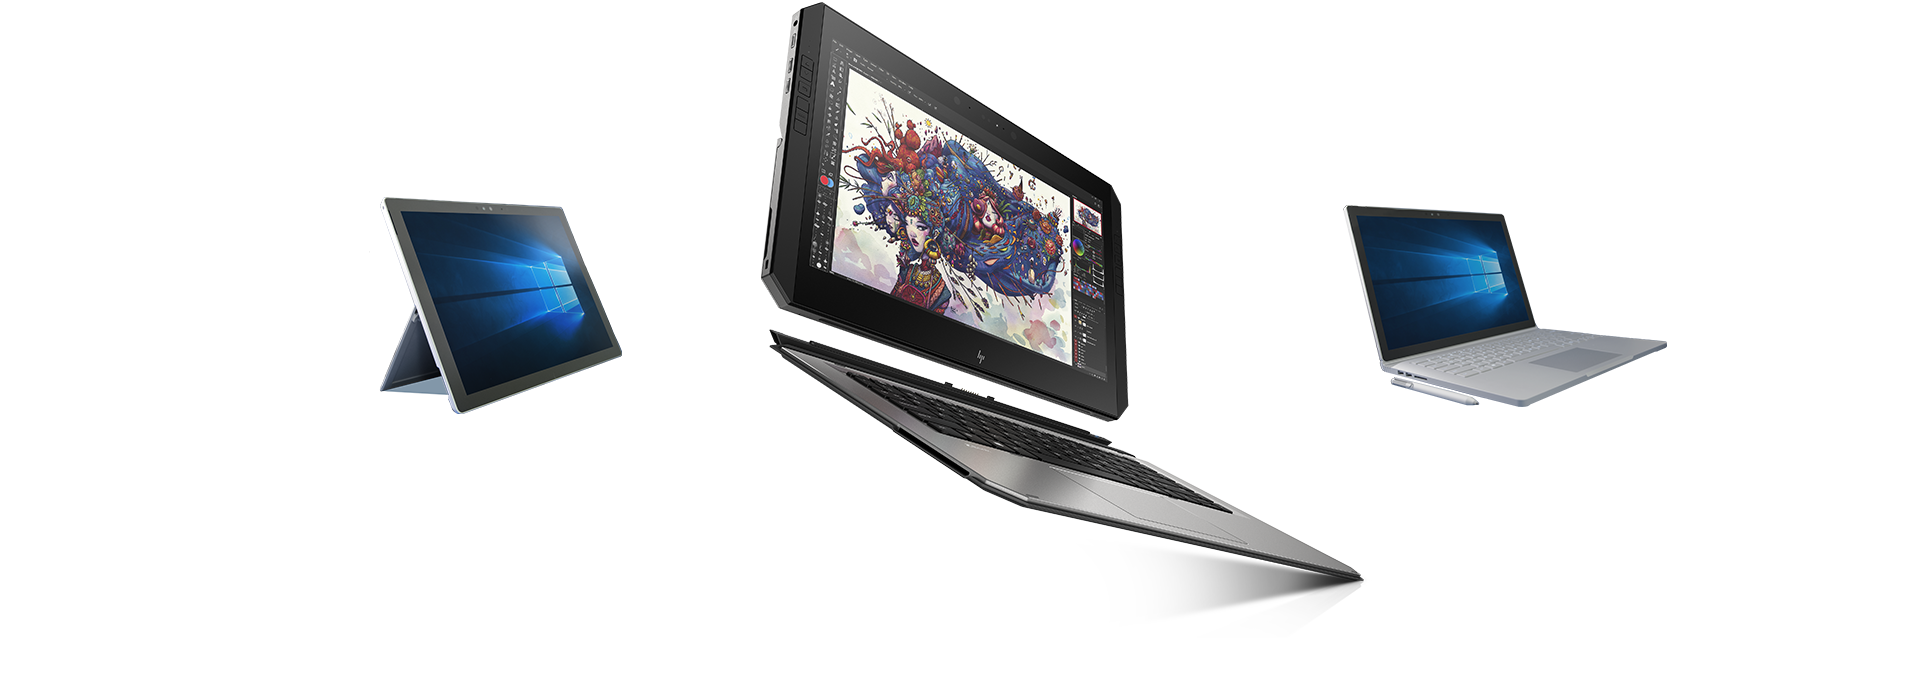 HP Zbook x2 Vs Microsoft® surface